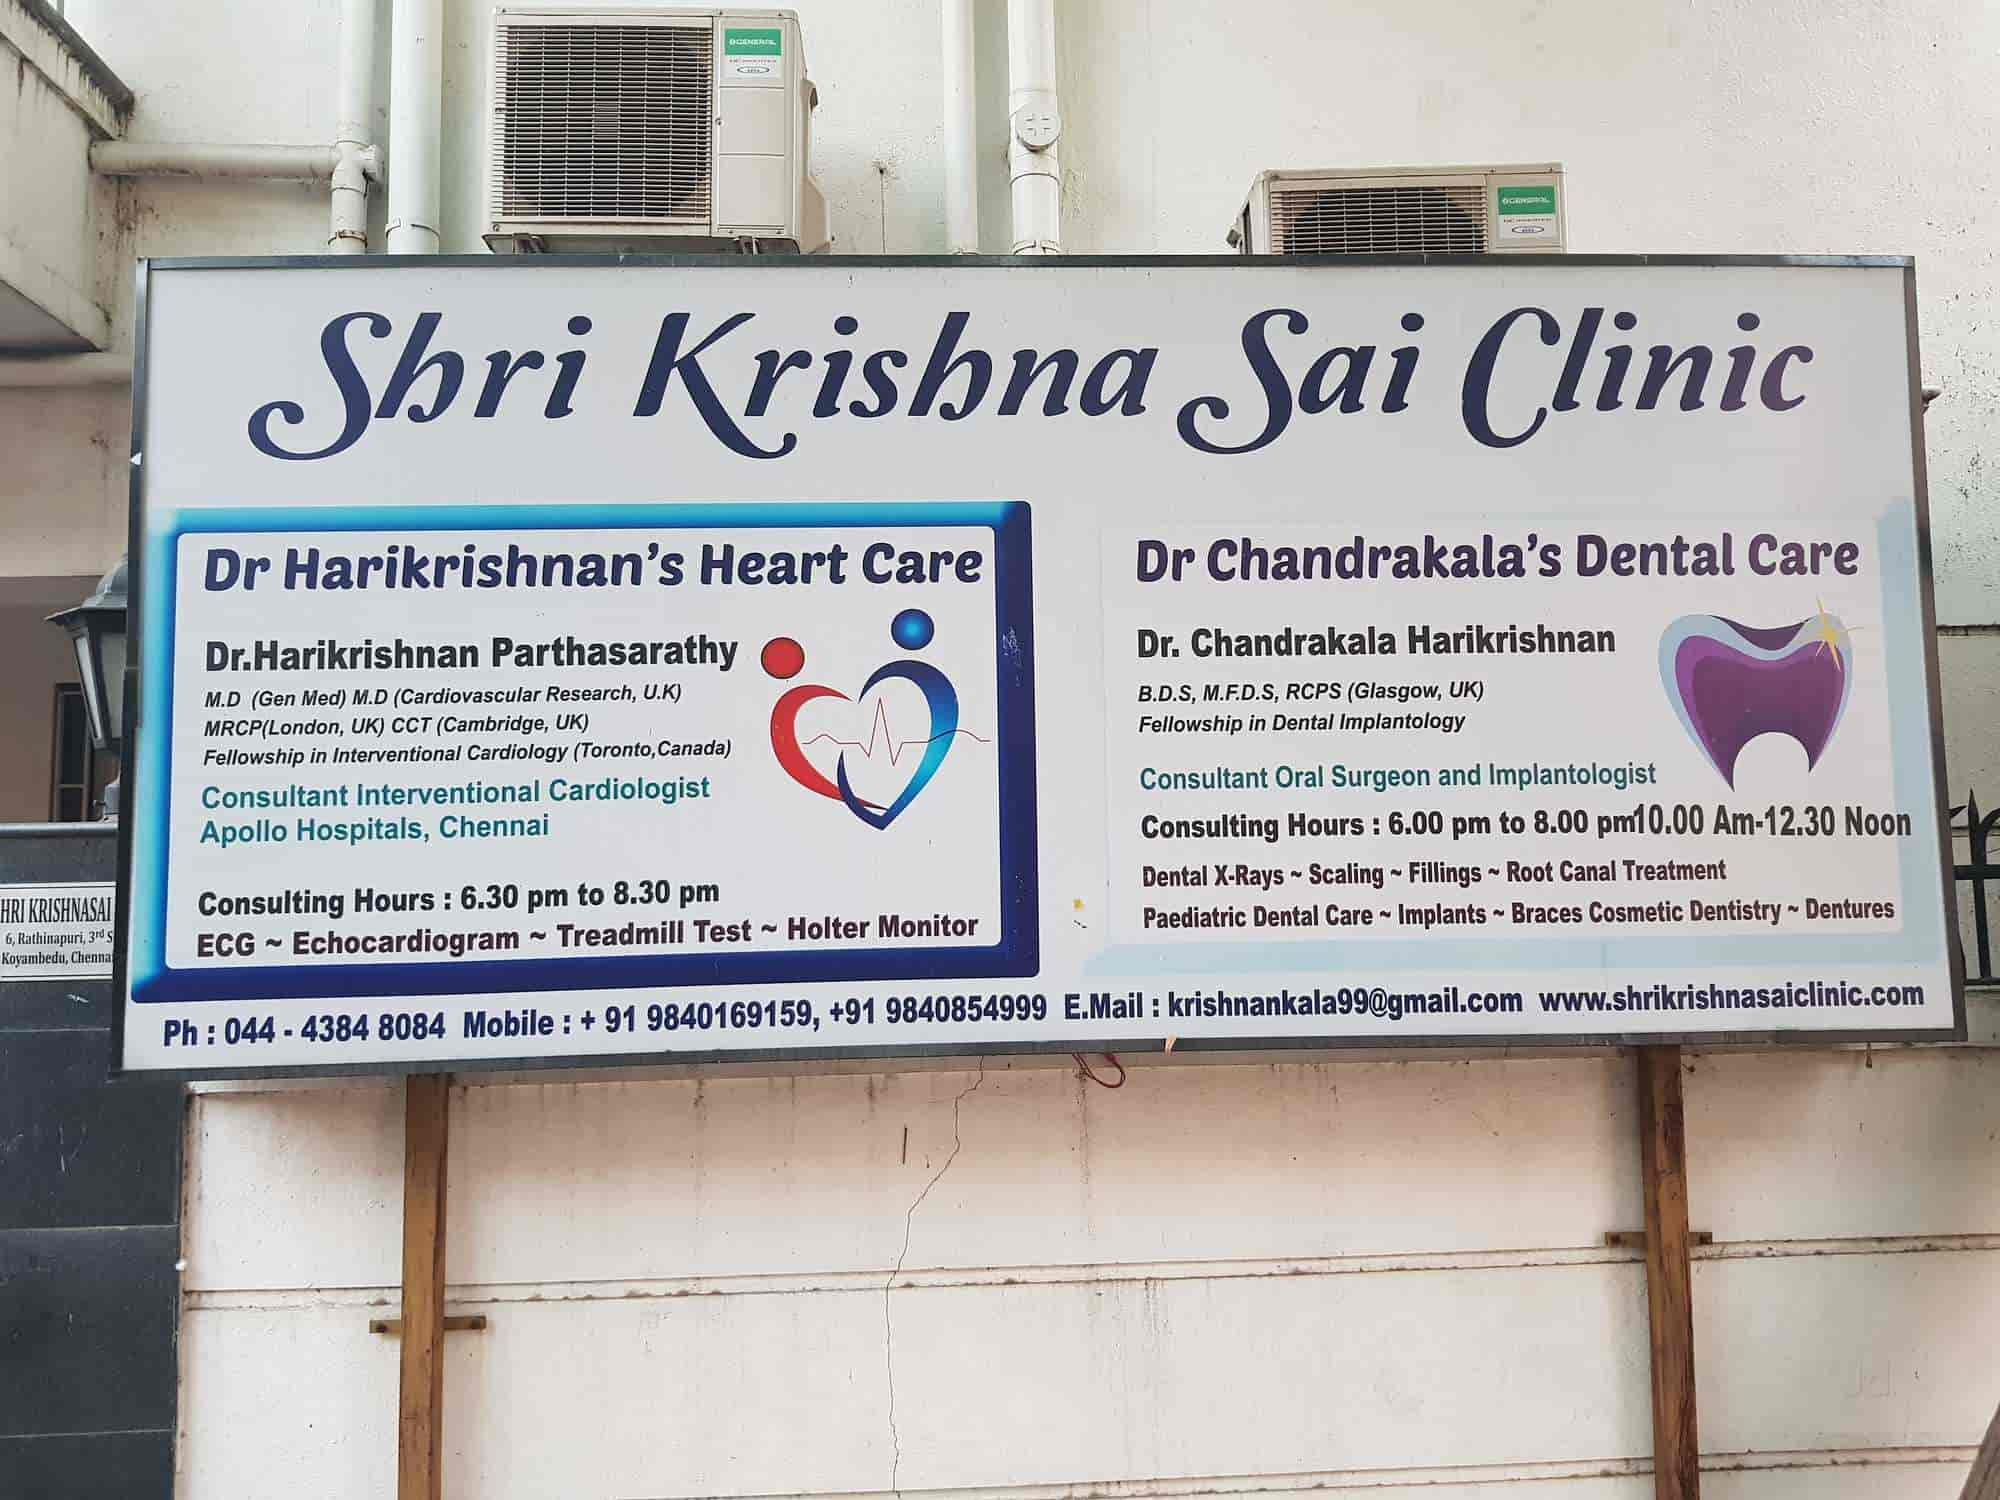 Harikrishnan Heart Care - Cardiologists - Book Appointment